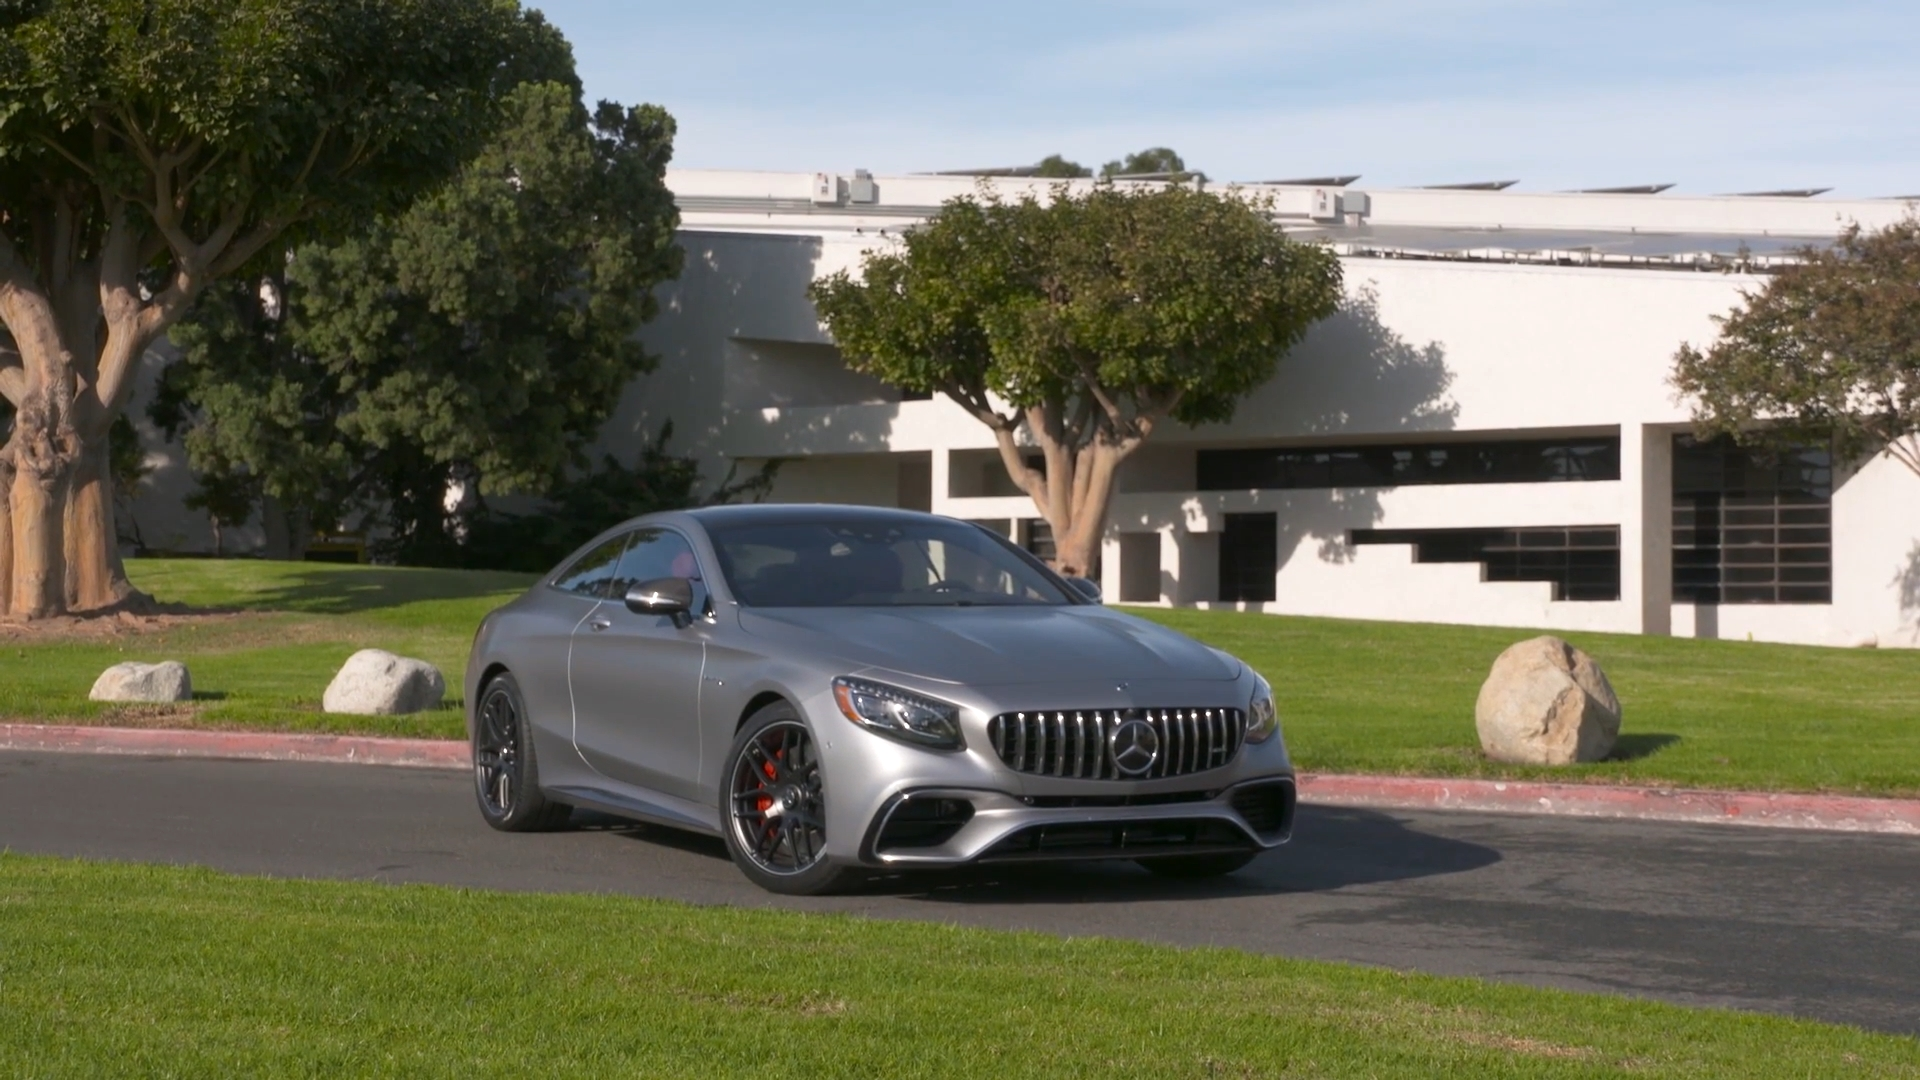 The new Mercedes AMG S 63 4MATIC Coupe Exterior Design in Grey magno